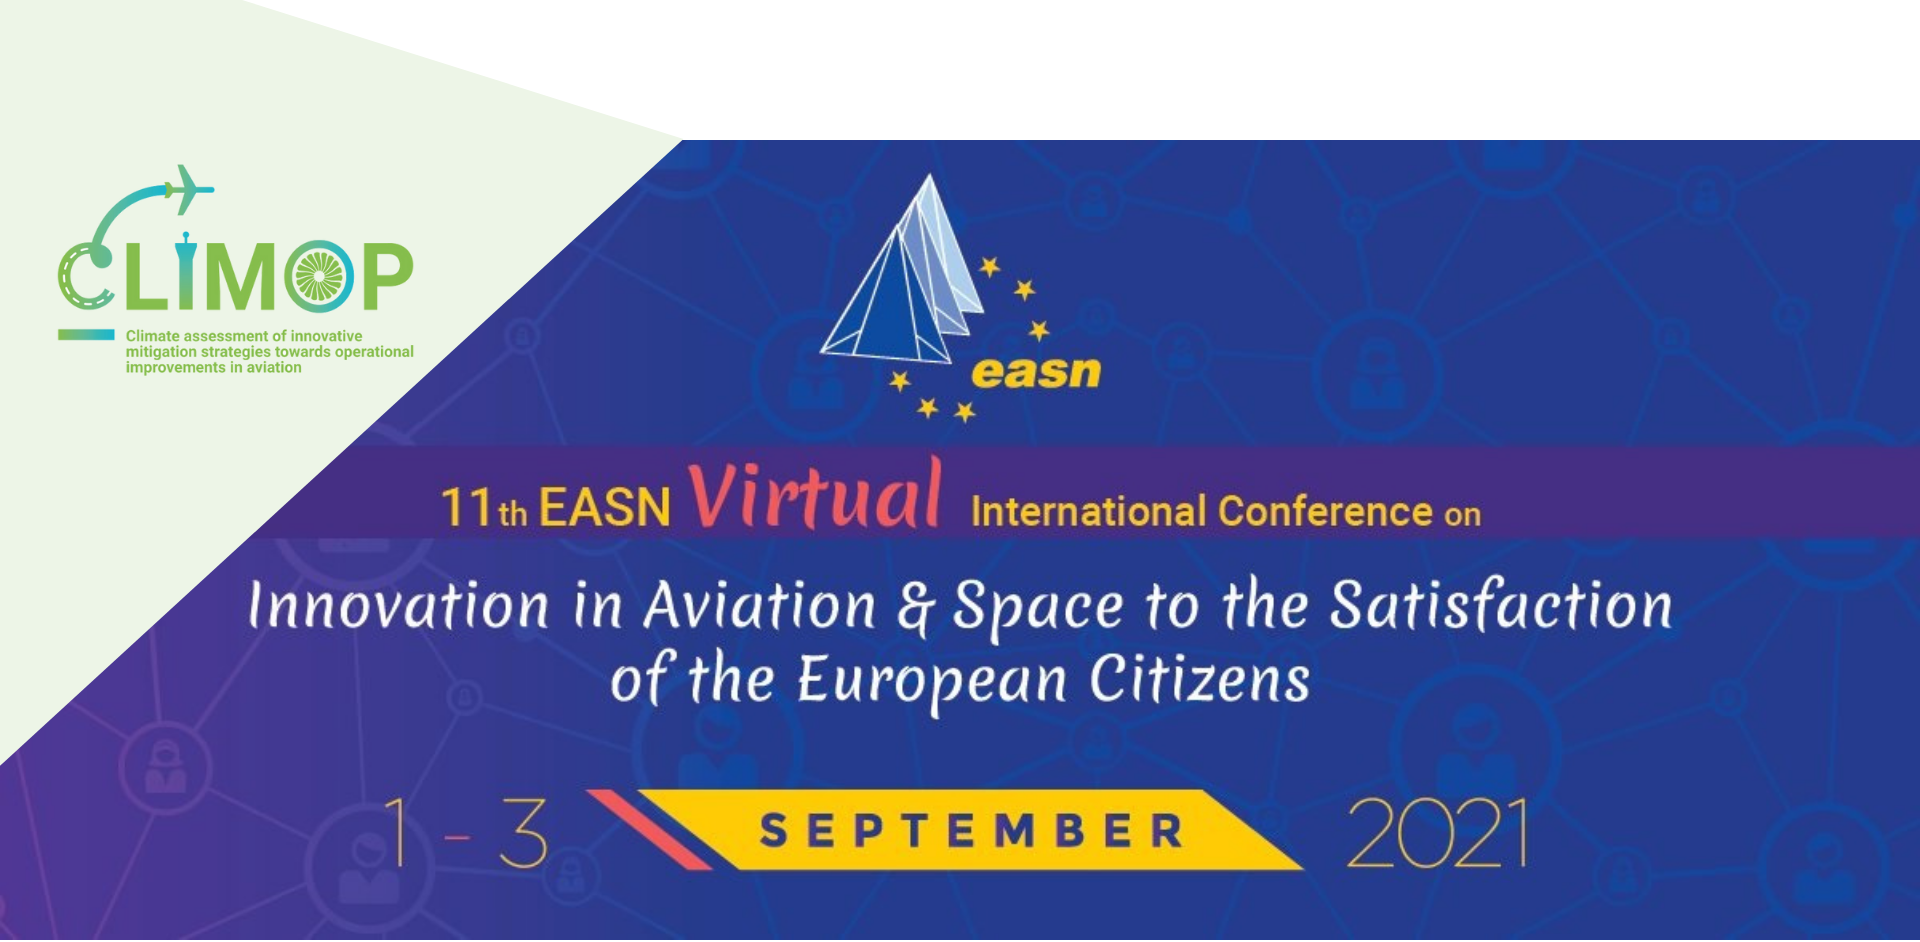 ClimOP 11th EASN Conference